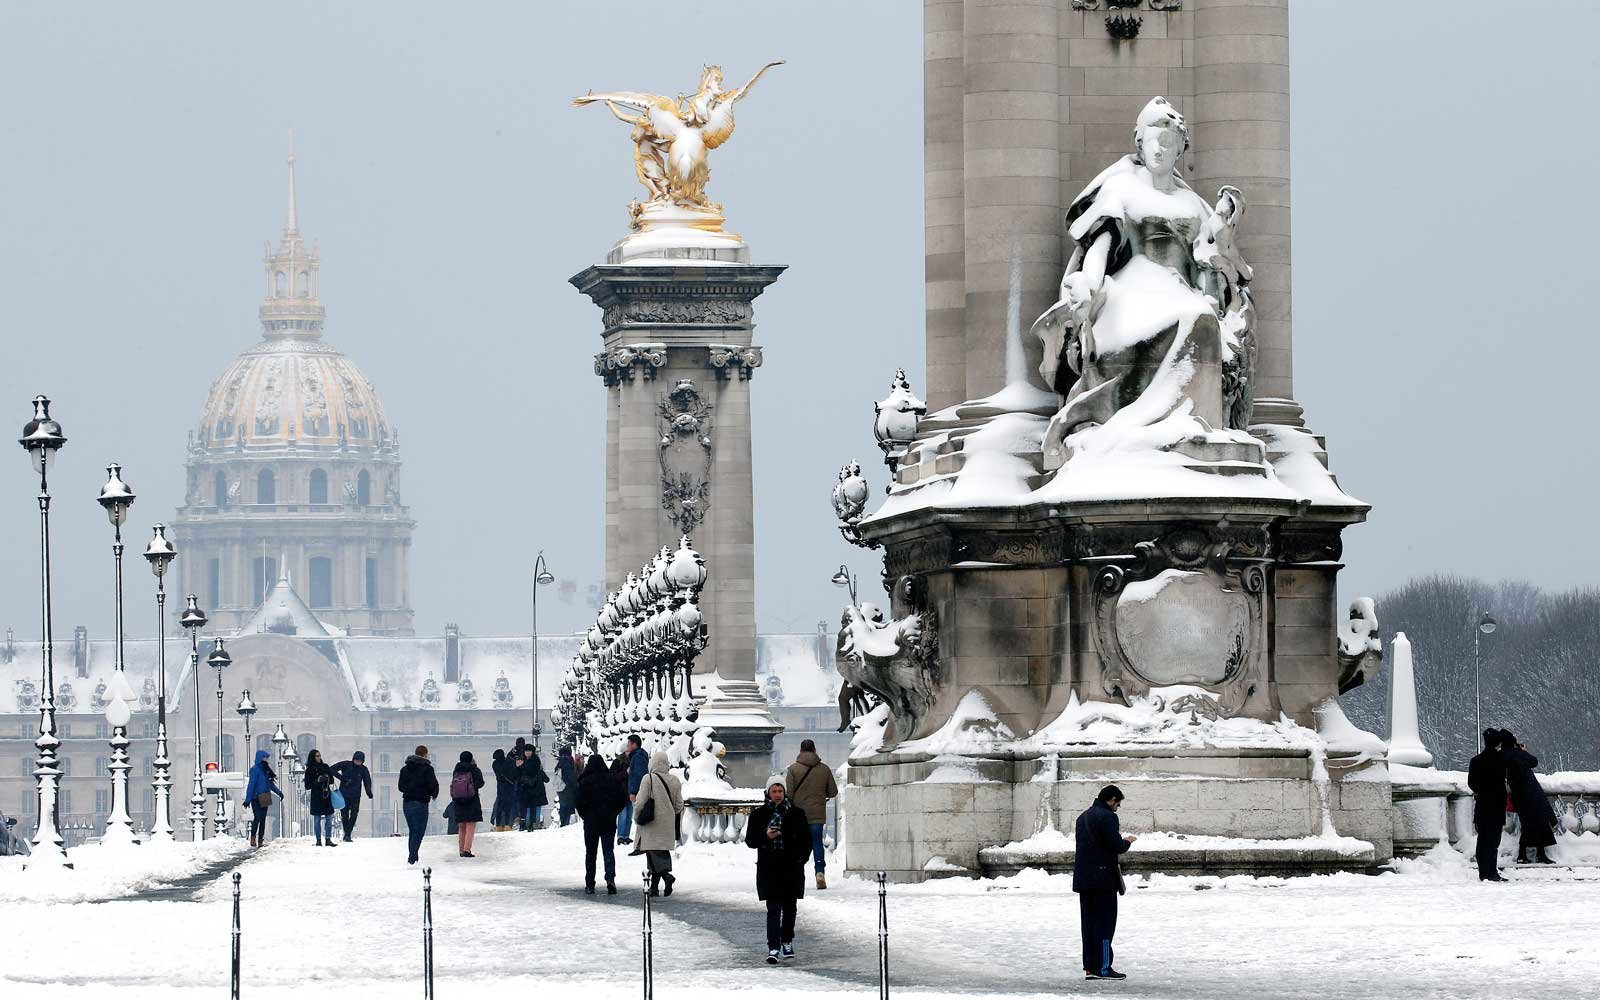 People walk on the snow-covered Pont Alexandre III bridge on February 7, 2018 in Paris, France.